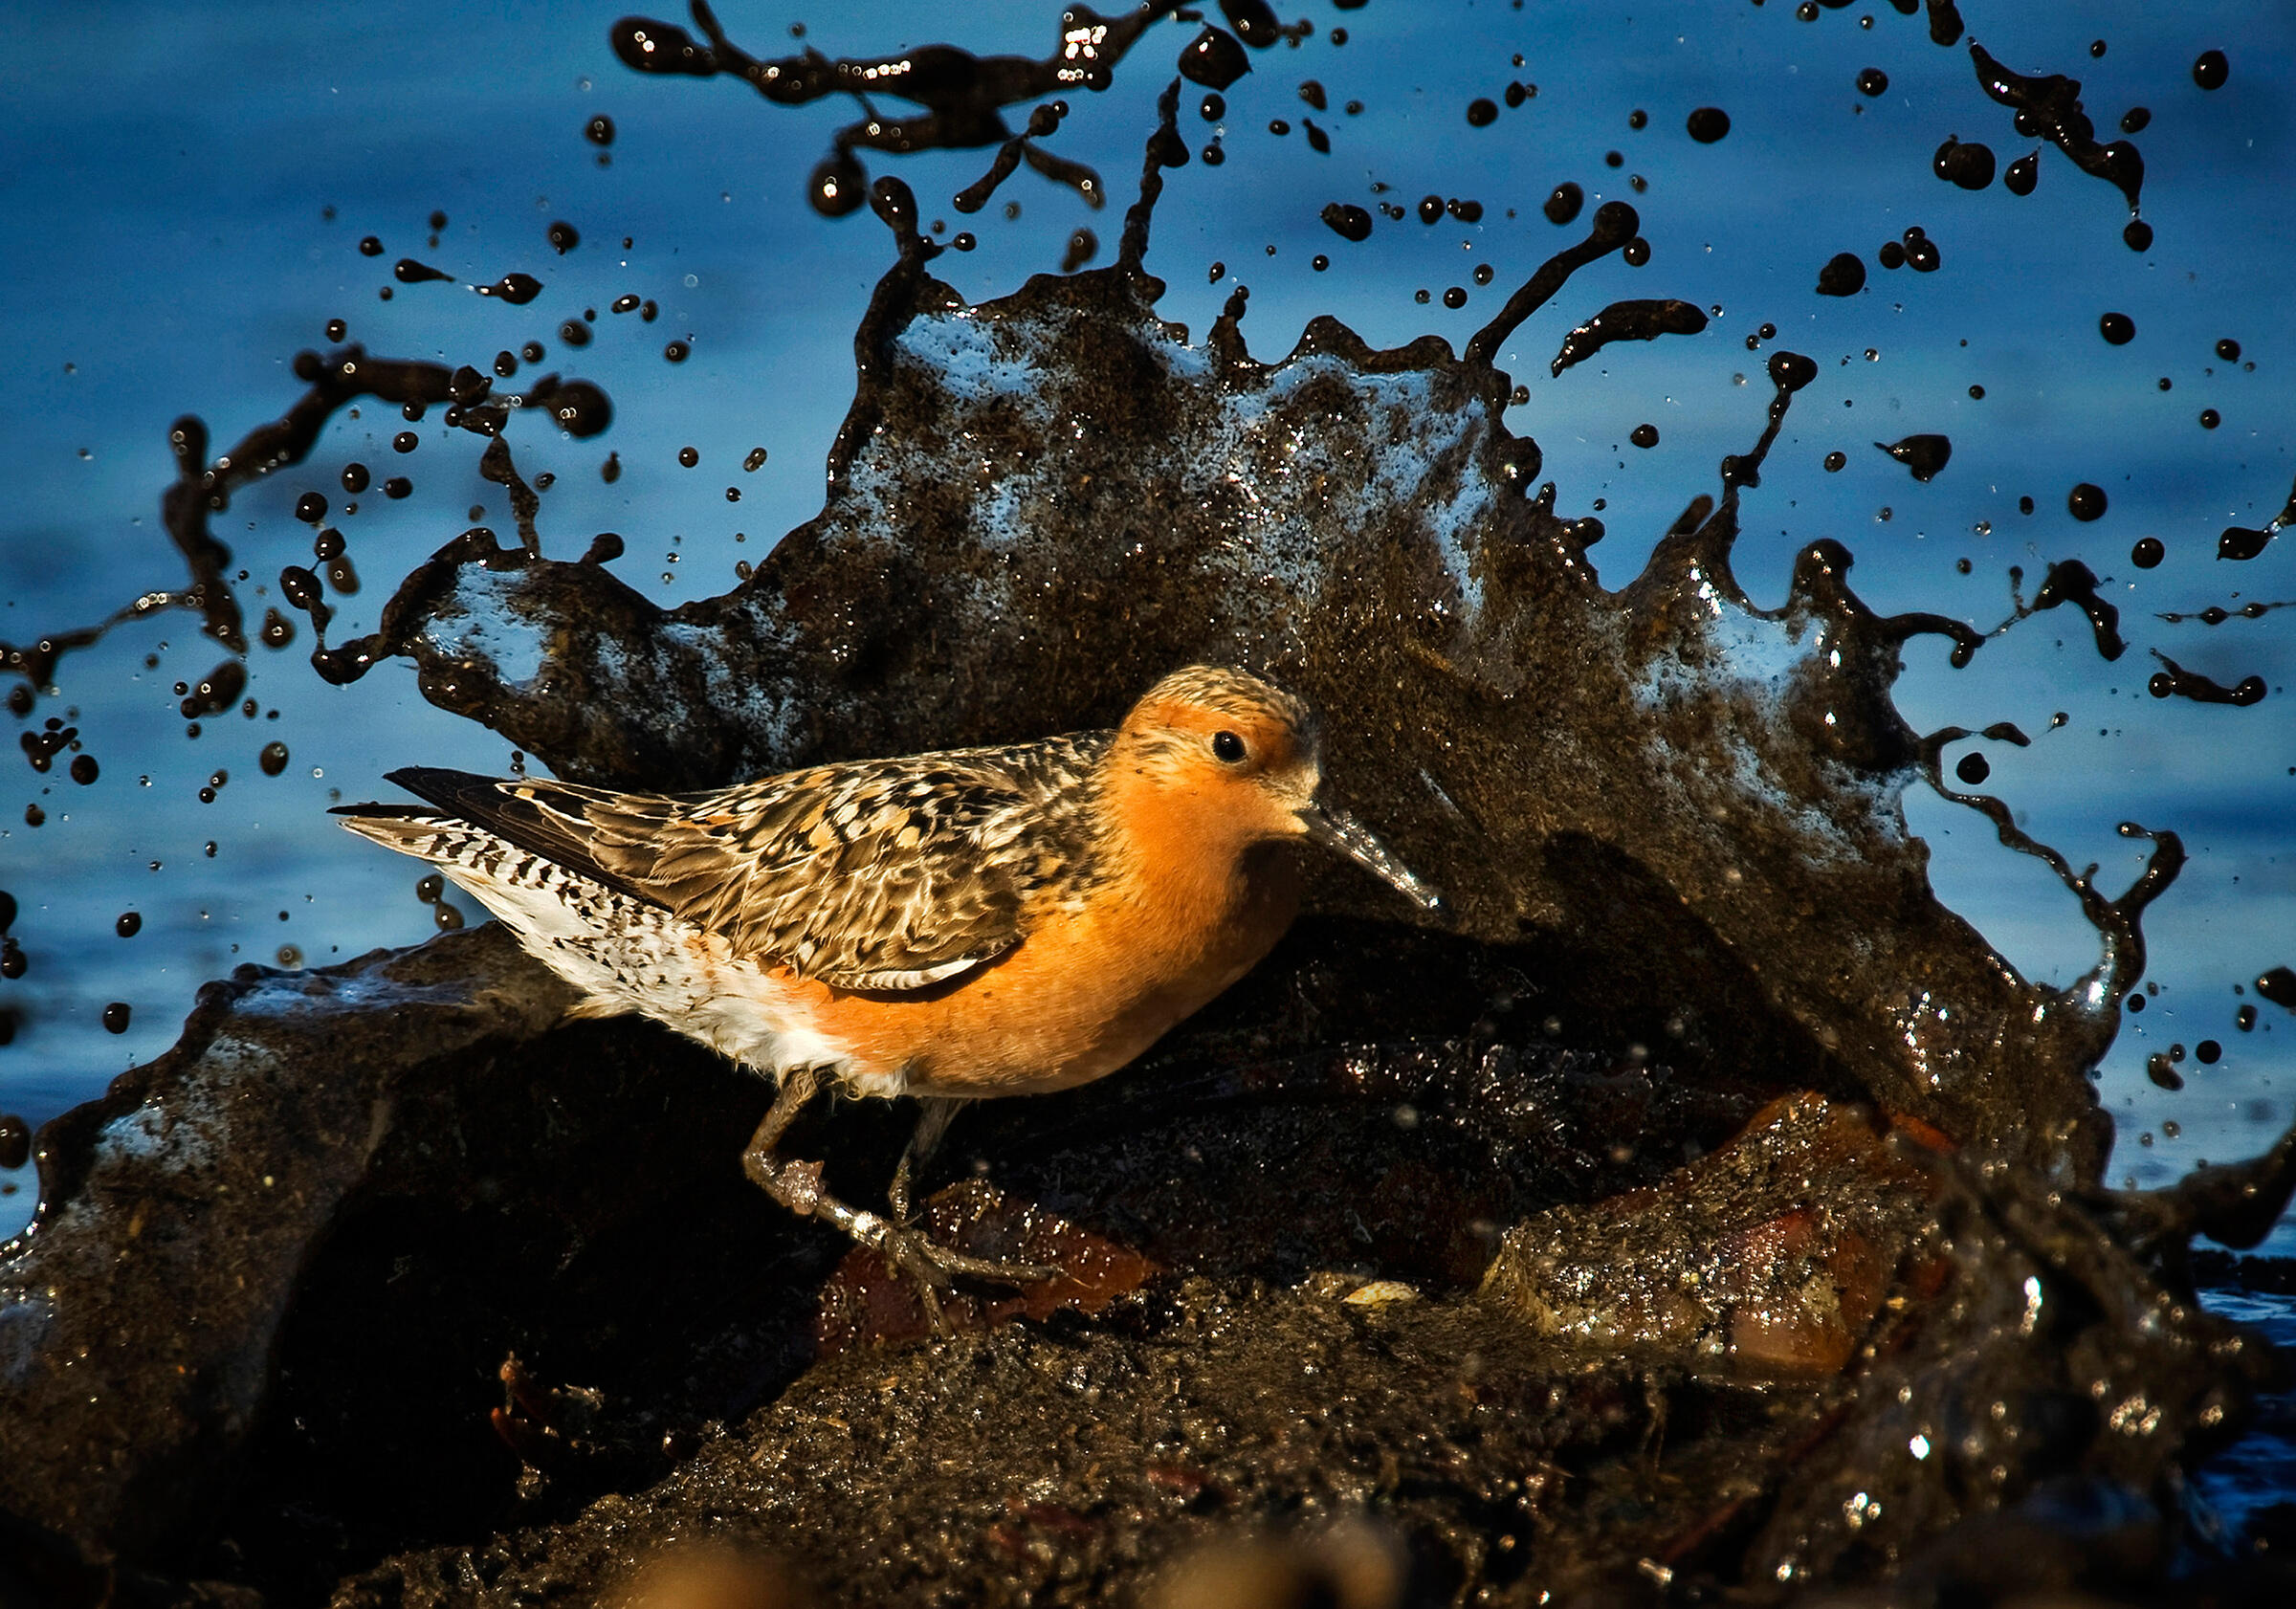 A knot at Delaware Bay. More than half the Atlantic Flyway's Red Knots, Ruddy Turnstones, and Semipalmated Sandpipers gorge on horseshoe crab eggs here during migration. Kevin Flemming